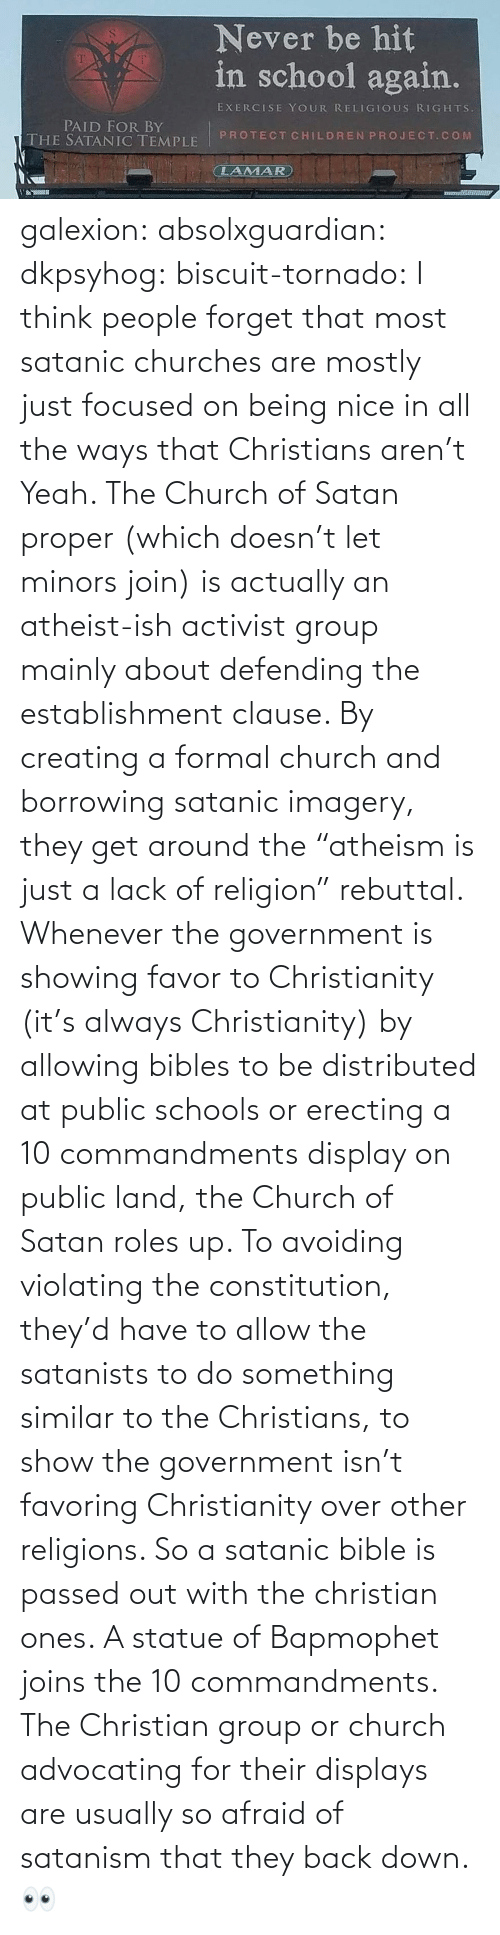 "whenever: galexion:  absolxguardian:  dkpsyhog:  biscuit-tornado:     I think people forget that most satanic churches are mostly just focused on being nice in all the ways that Christians aren't  Yeah. The Church of Satan proper (which doesn't let minors join) is actually an atheist-ish activist group mainly about defending the establishment clause. By creating a formal church and borrowing satanic imagery, they get around the ""atheism is just a lack of religion"" rebuttal. Whenever the government is showing favor to Christianity (it's always Christianity) by allowing bibles to be distributed at public schools or erecting a 10 commandments display on public land, the Church of Satan roles up. To avoiding violating the constitution, they'd have to allow the satanists to do something similar to the Christians, to show the government isn't favoring Christianity over other religions. So a satanic bible is passed out with the christian ones. A statue of Bapmophet joins the 10 commandments. The Christian group or church advocating for their displays are usually so afraid of satanism that they back down.   👀"